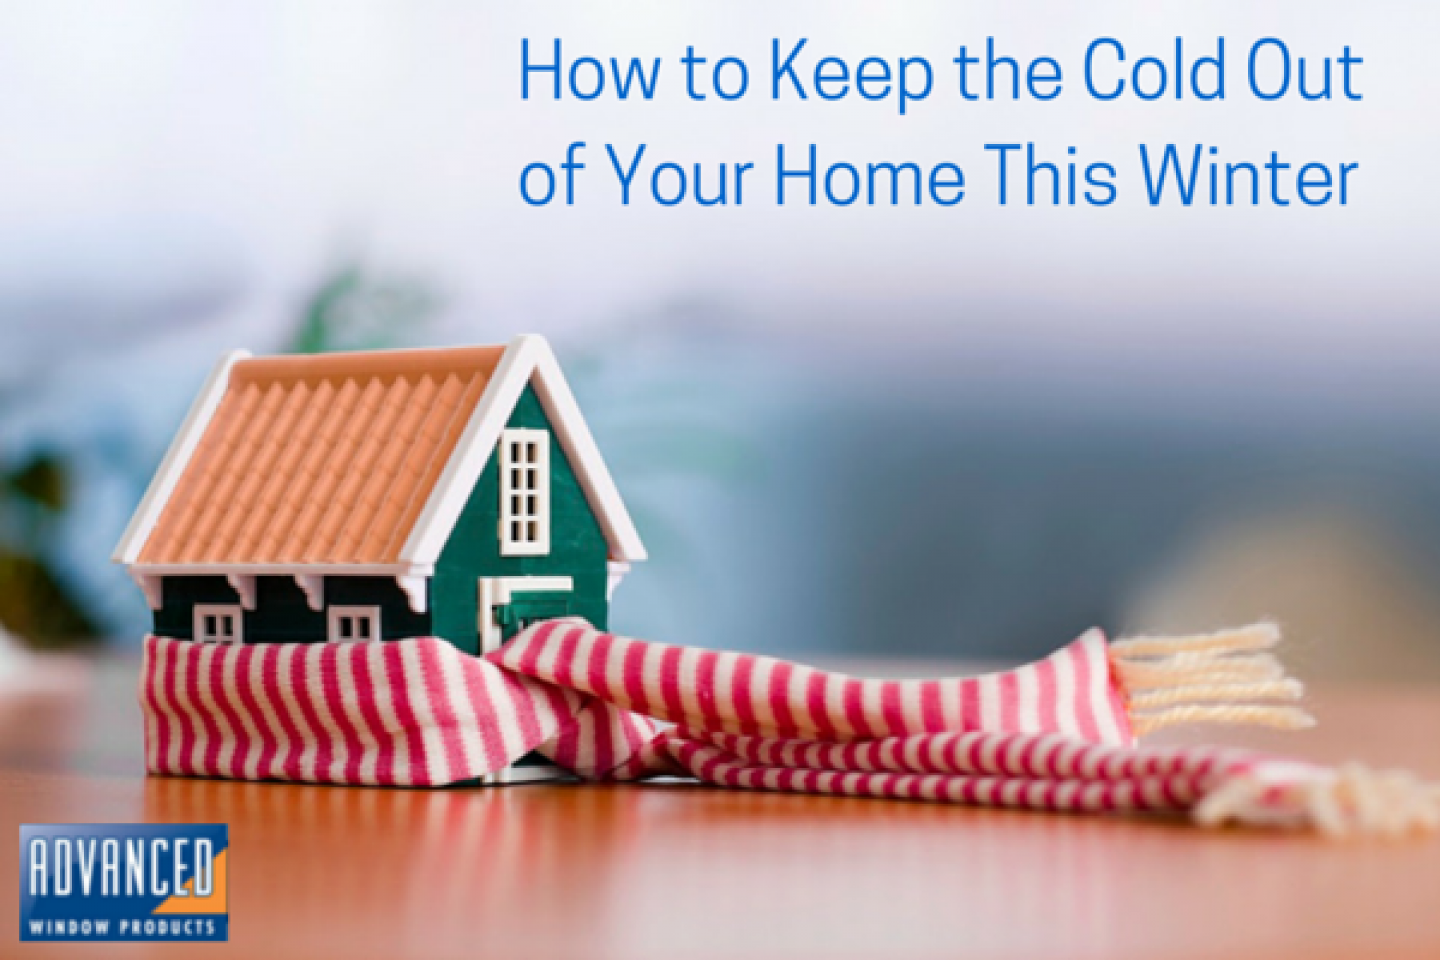 How to Keep the Cold Out of Your Home This Winter